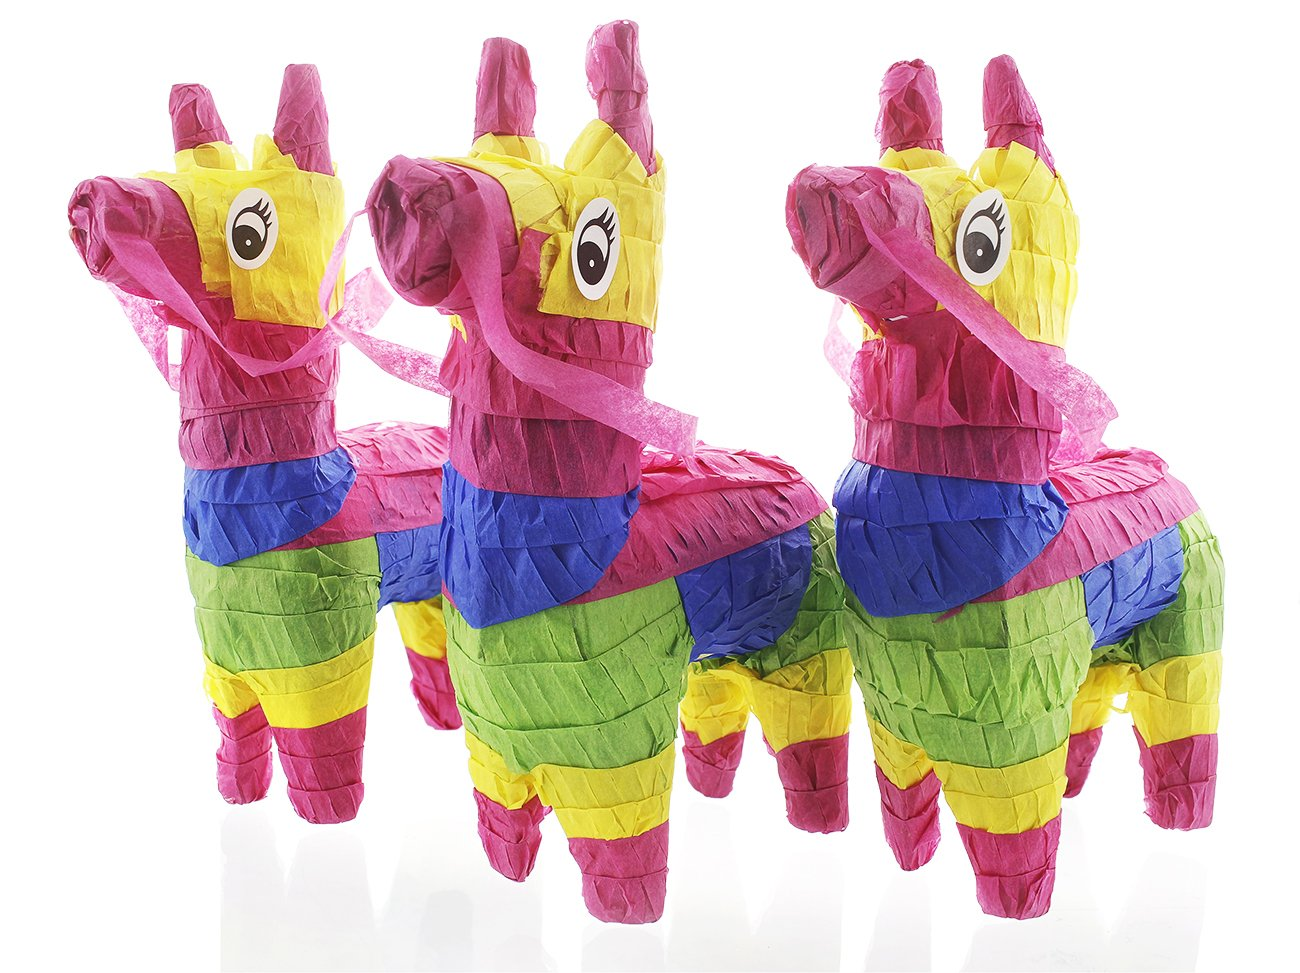 Pack of 3 Miniature Donkey Pinatas - Rainbow Donkey Mini-Sized Mexican Pinatas for Birthday Party, Cinco De Mayo, Fiestas, Celebrations - 4 x 7.5 x 2 inches by Juvale